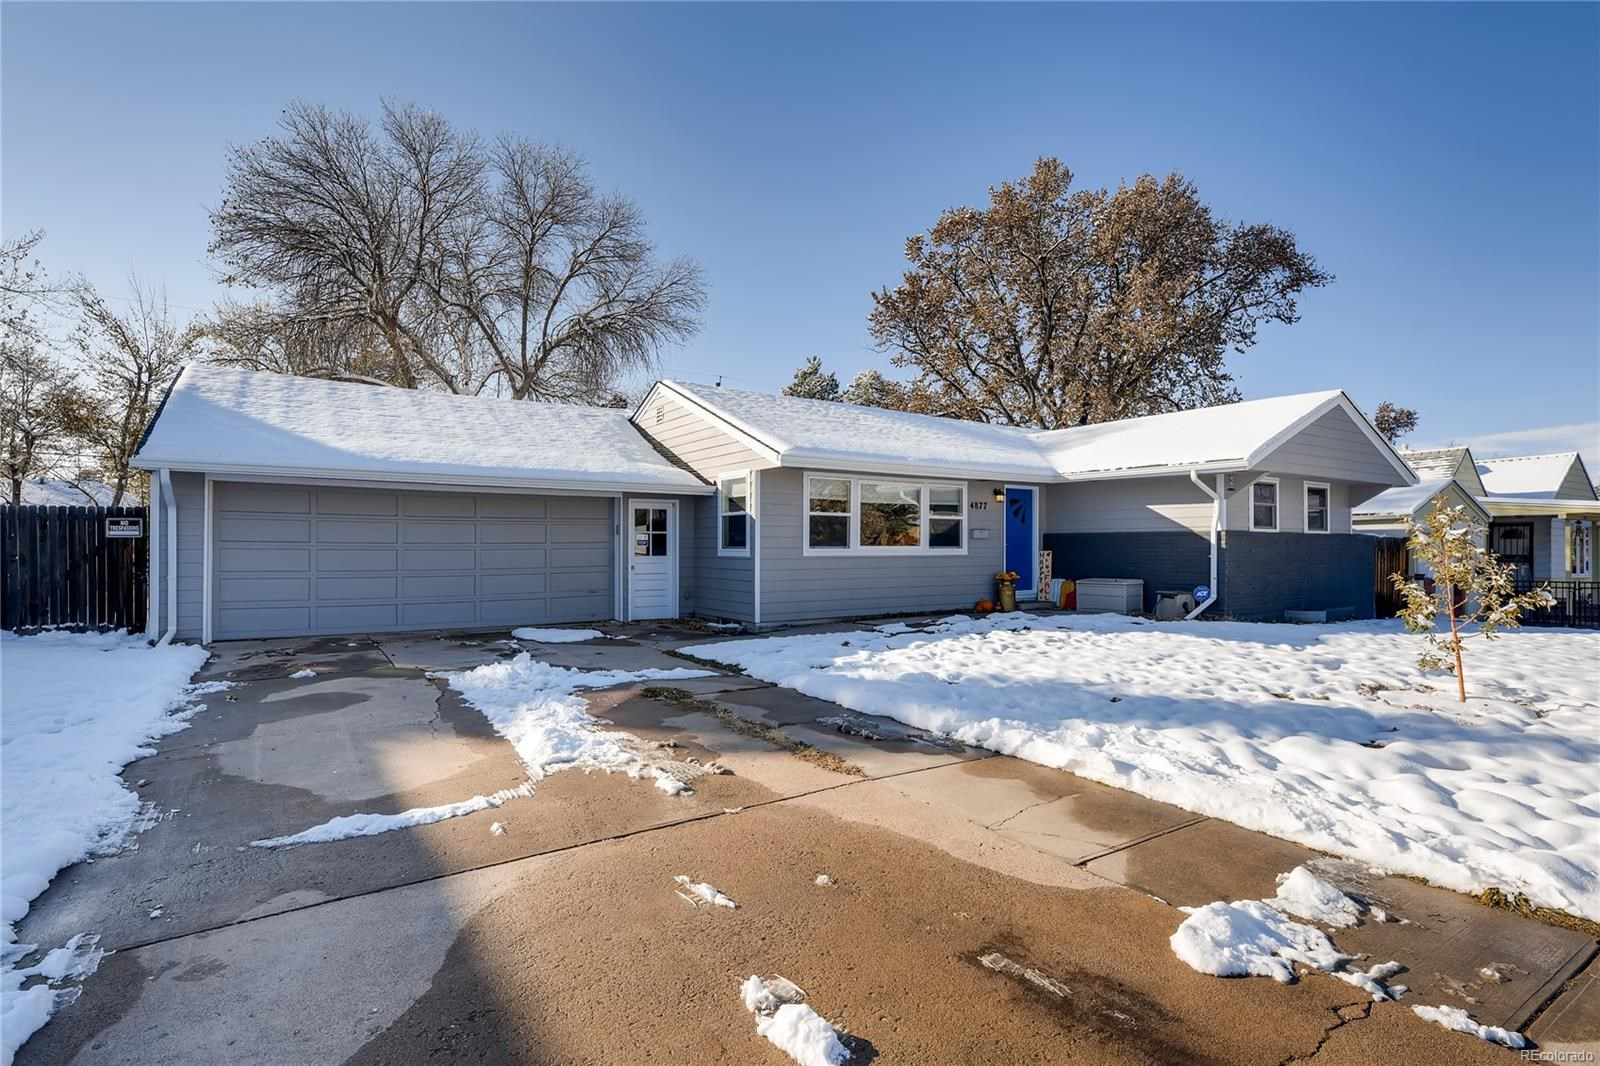 MLS# 2202878 - 2 - 4877 S Delaware Street, Englewood, CO 80110